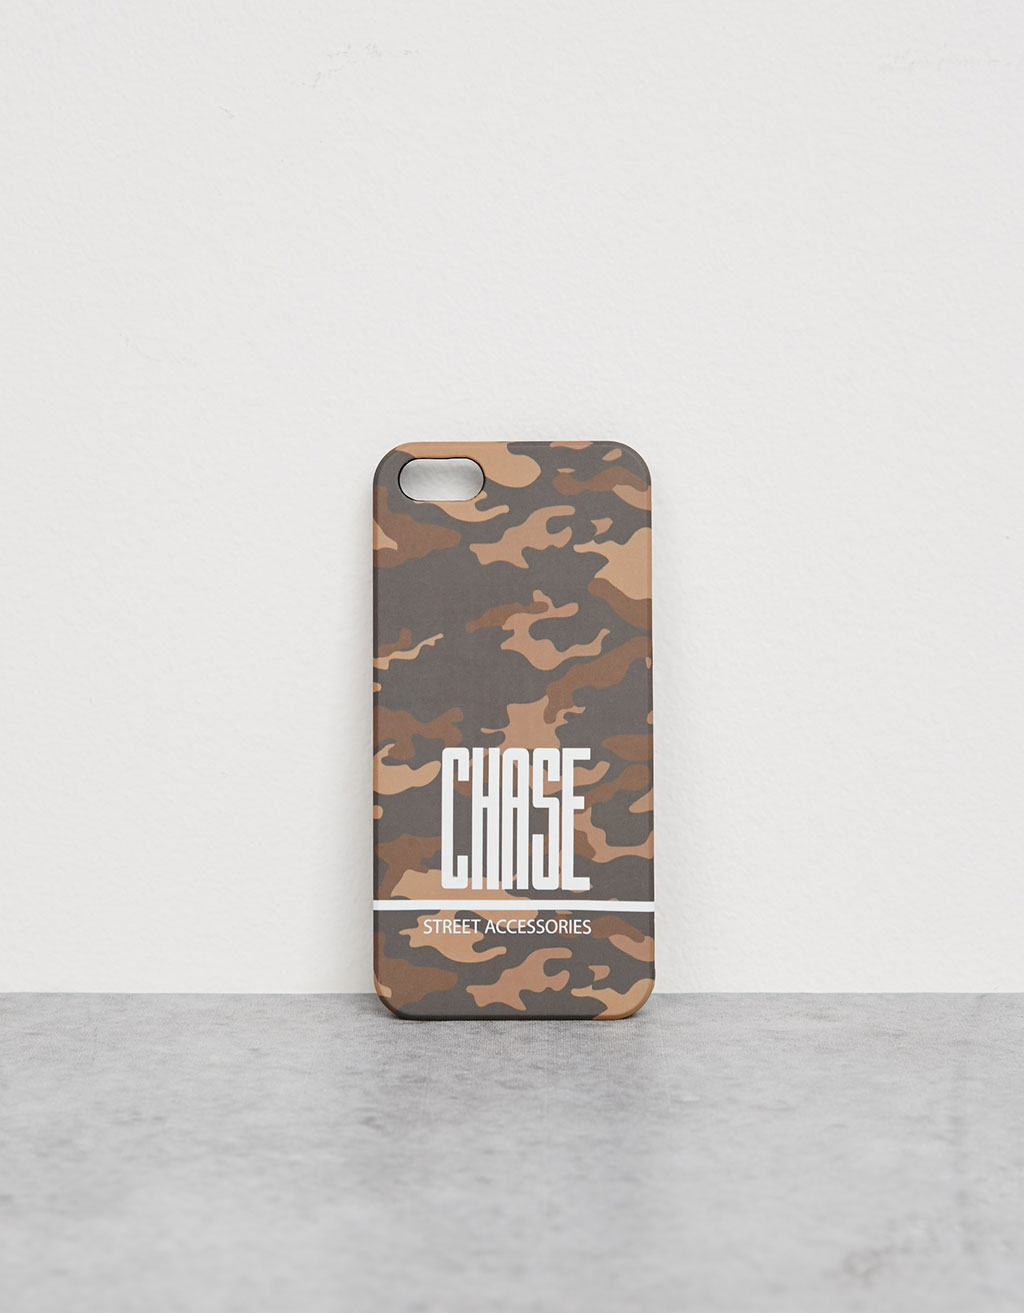 Carcasa camuflaxe iPhone 5/5s